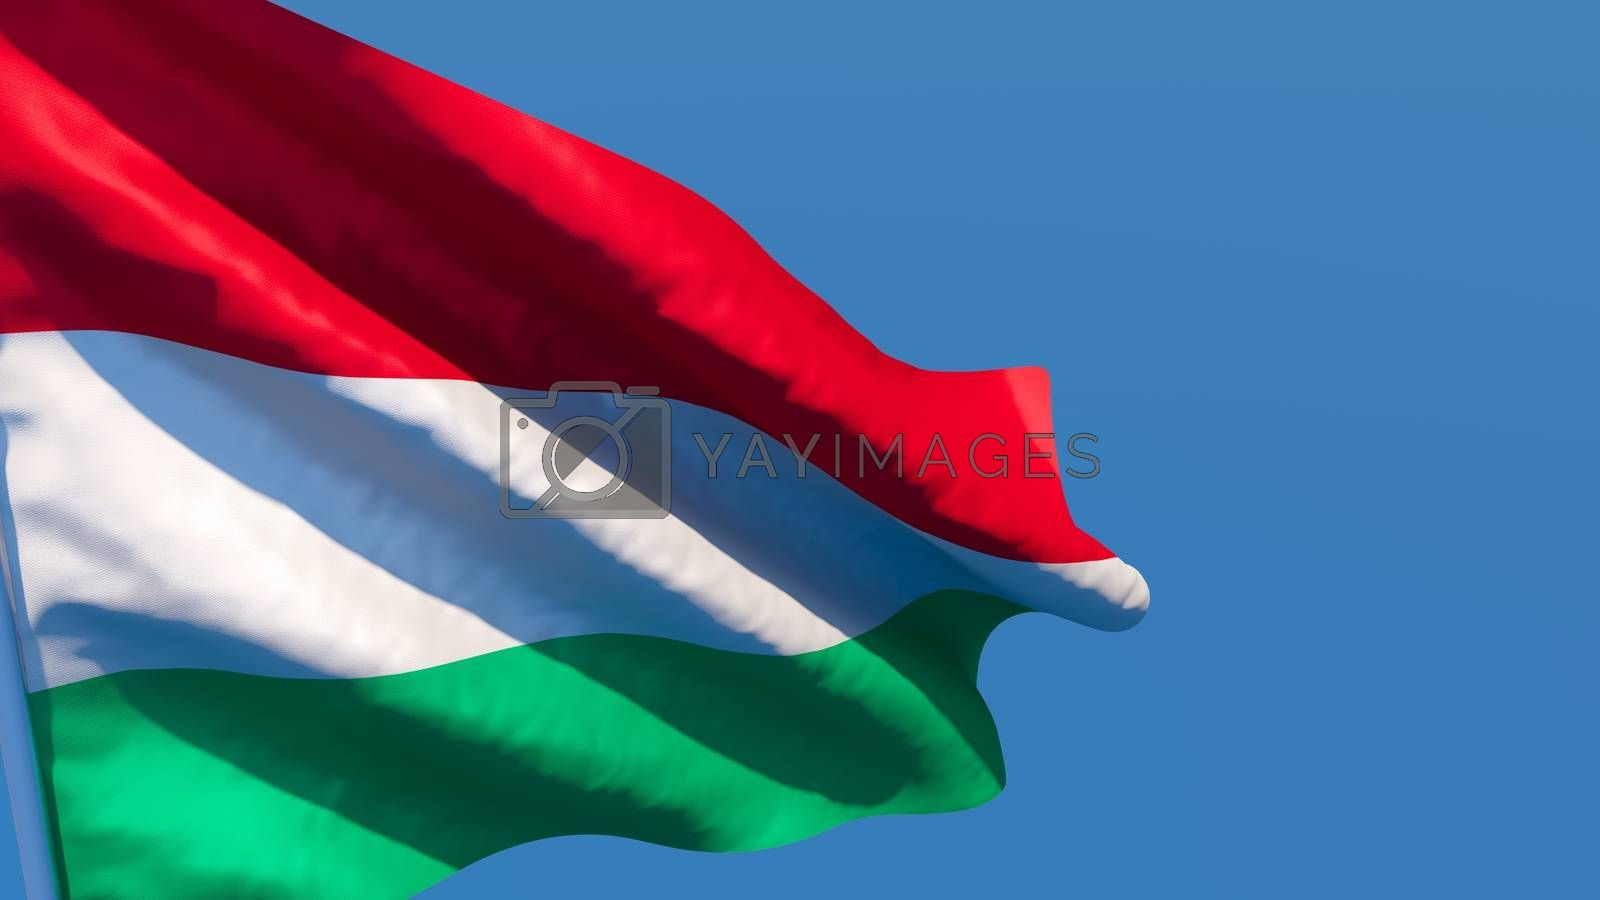 3D rendering of the national flag of Hungary waving in the wind against a blue sky.